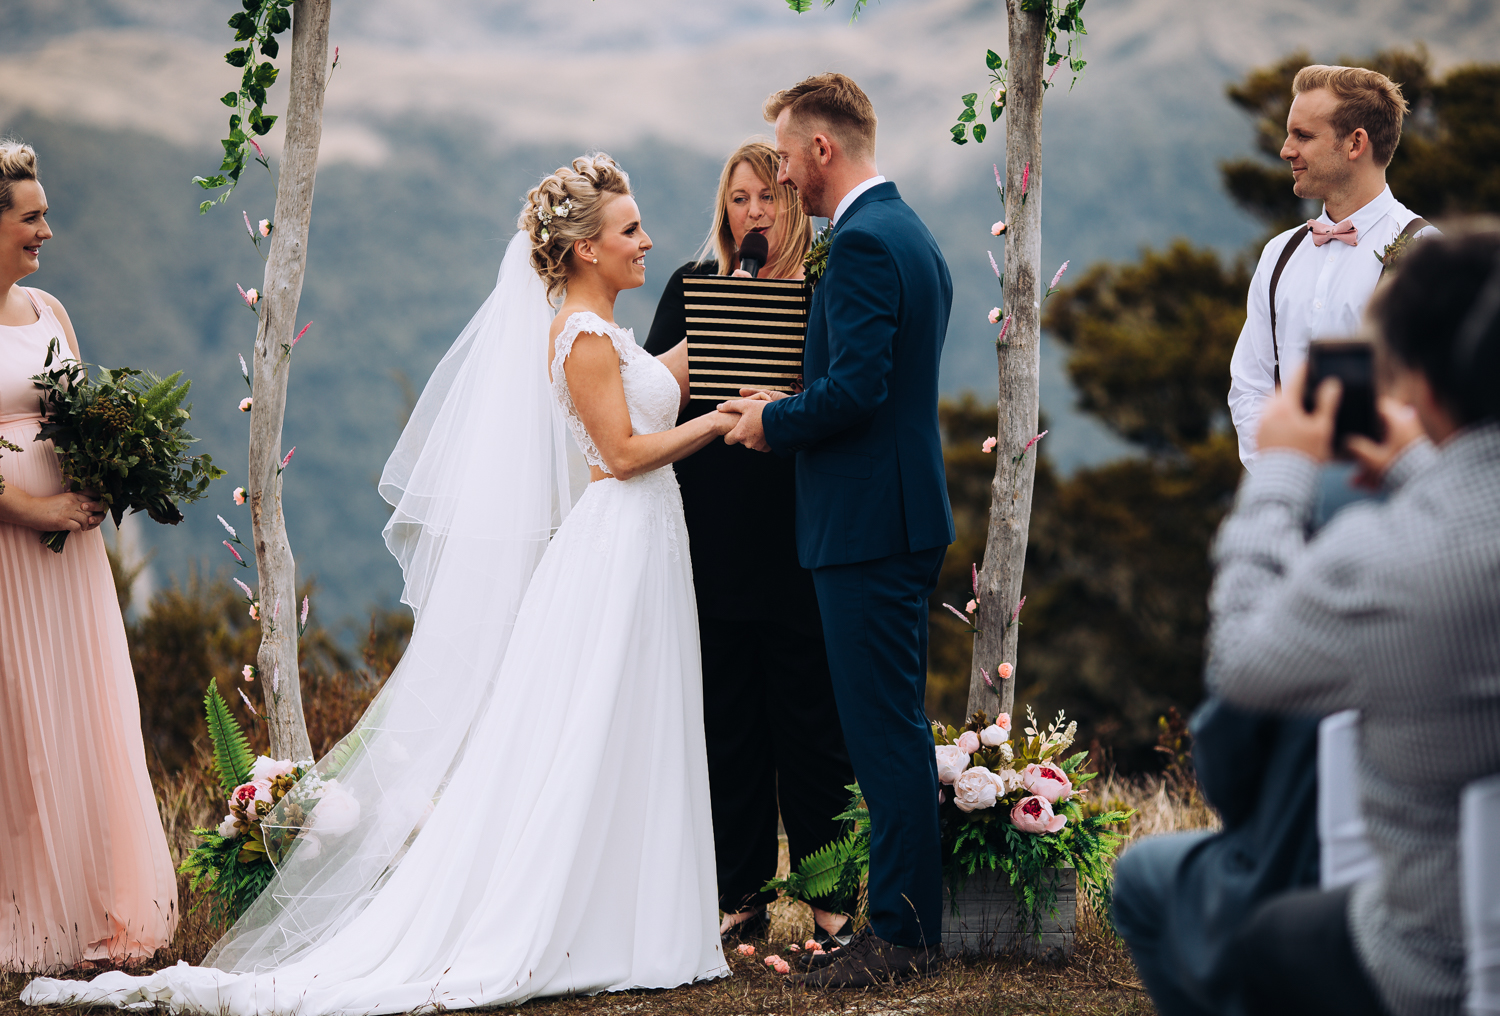 wanaka wedding photographer videographer-263.jpg